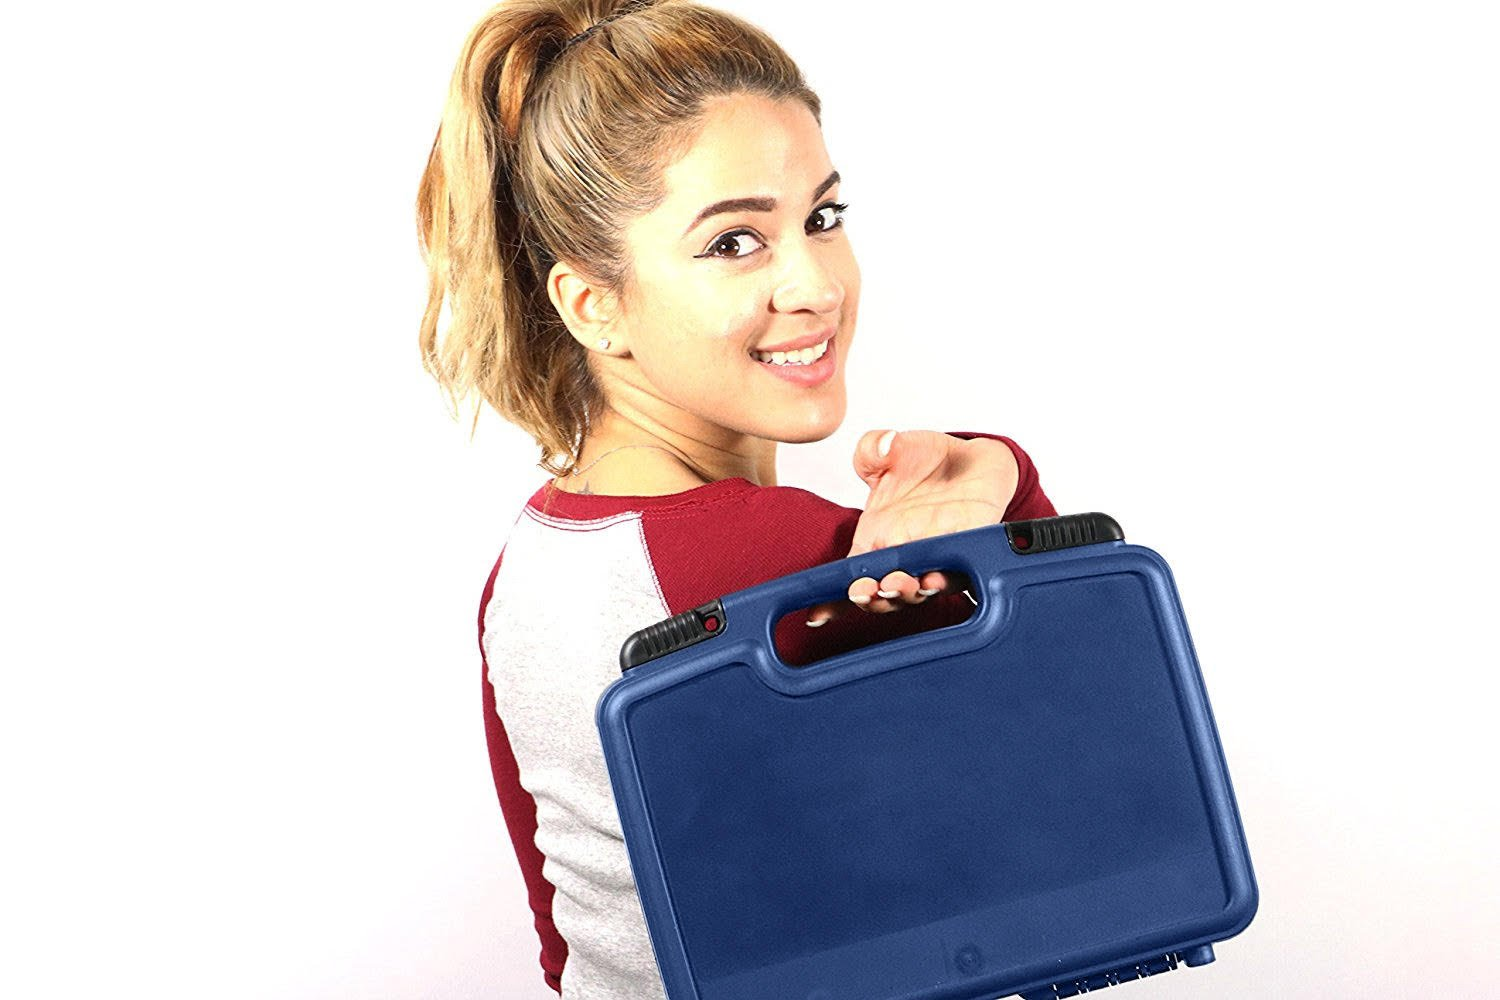 Life Made Better Storage Organizer - Compatible with Tascam DR-05, DR-40, DR-22L, DR-100MKll, DR-44WL Portable Recorder And Accessories- Durable Carrying Case - Blue by Life Made Better